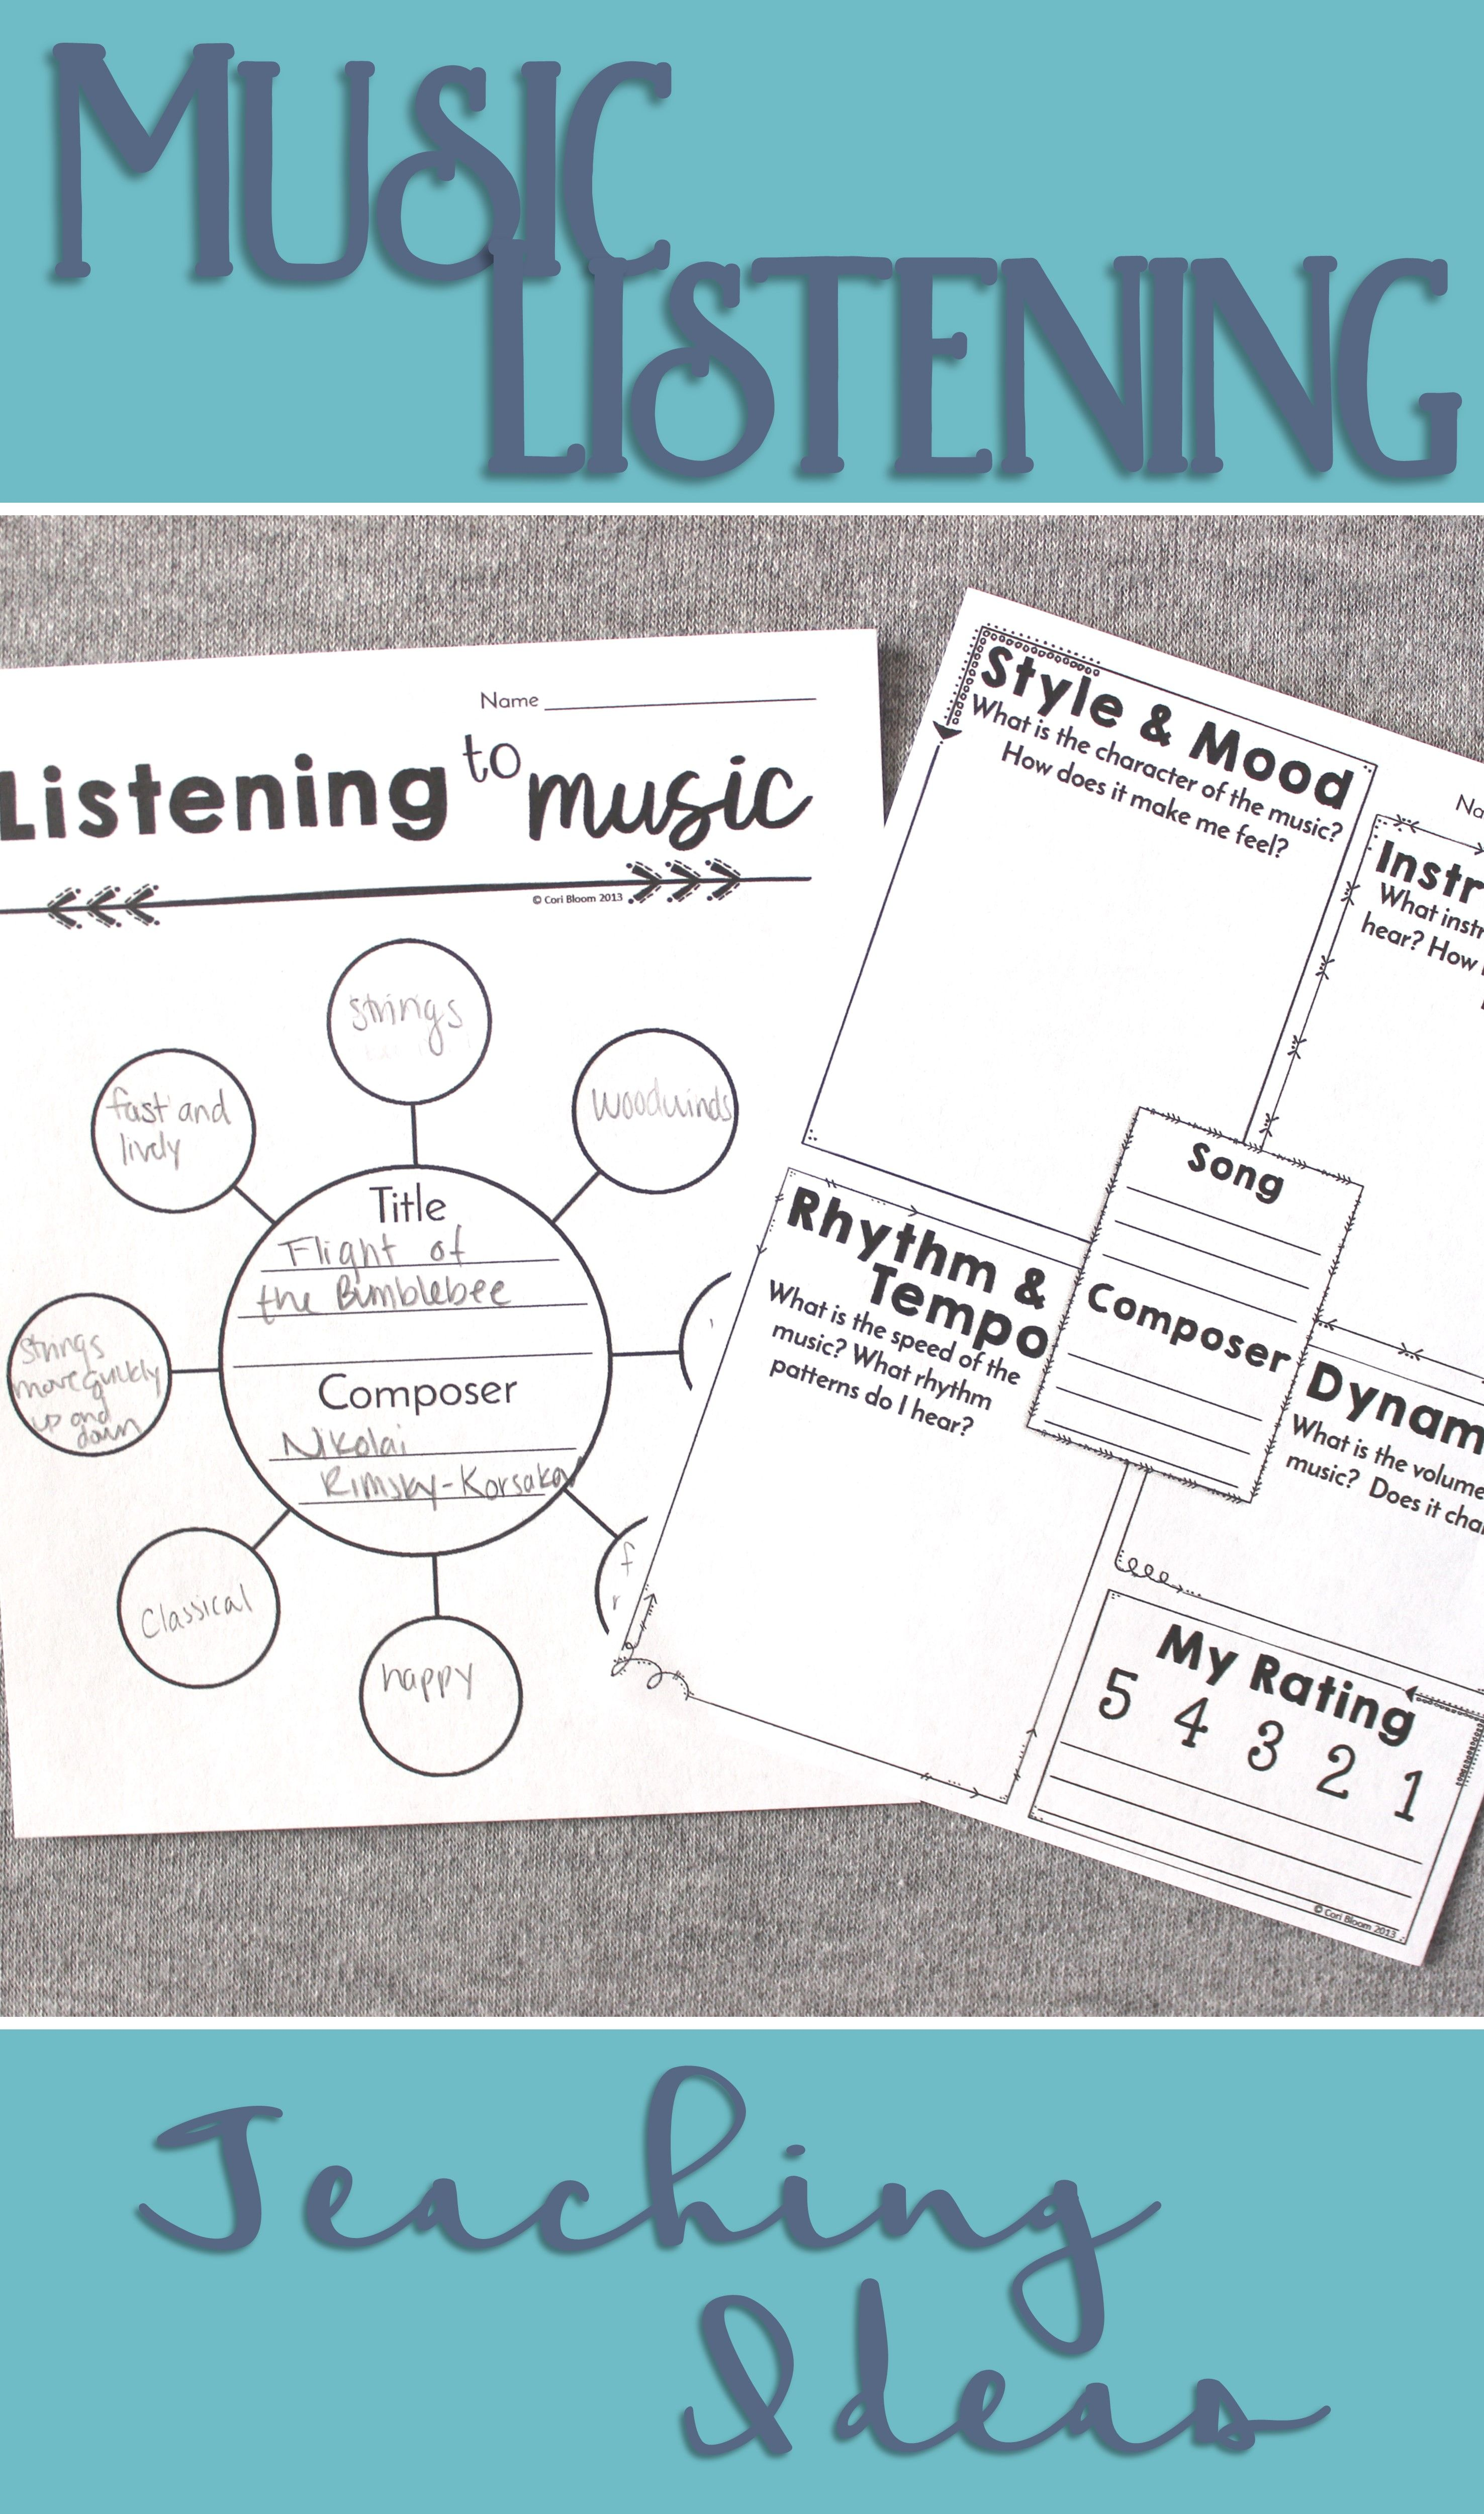 A Giant Collection Of Music Listening Ideas